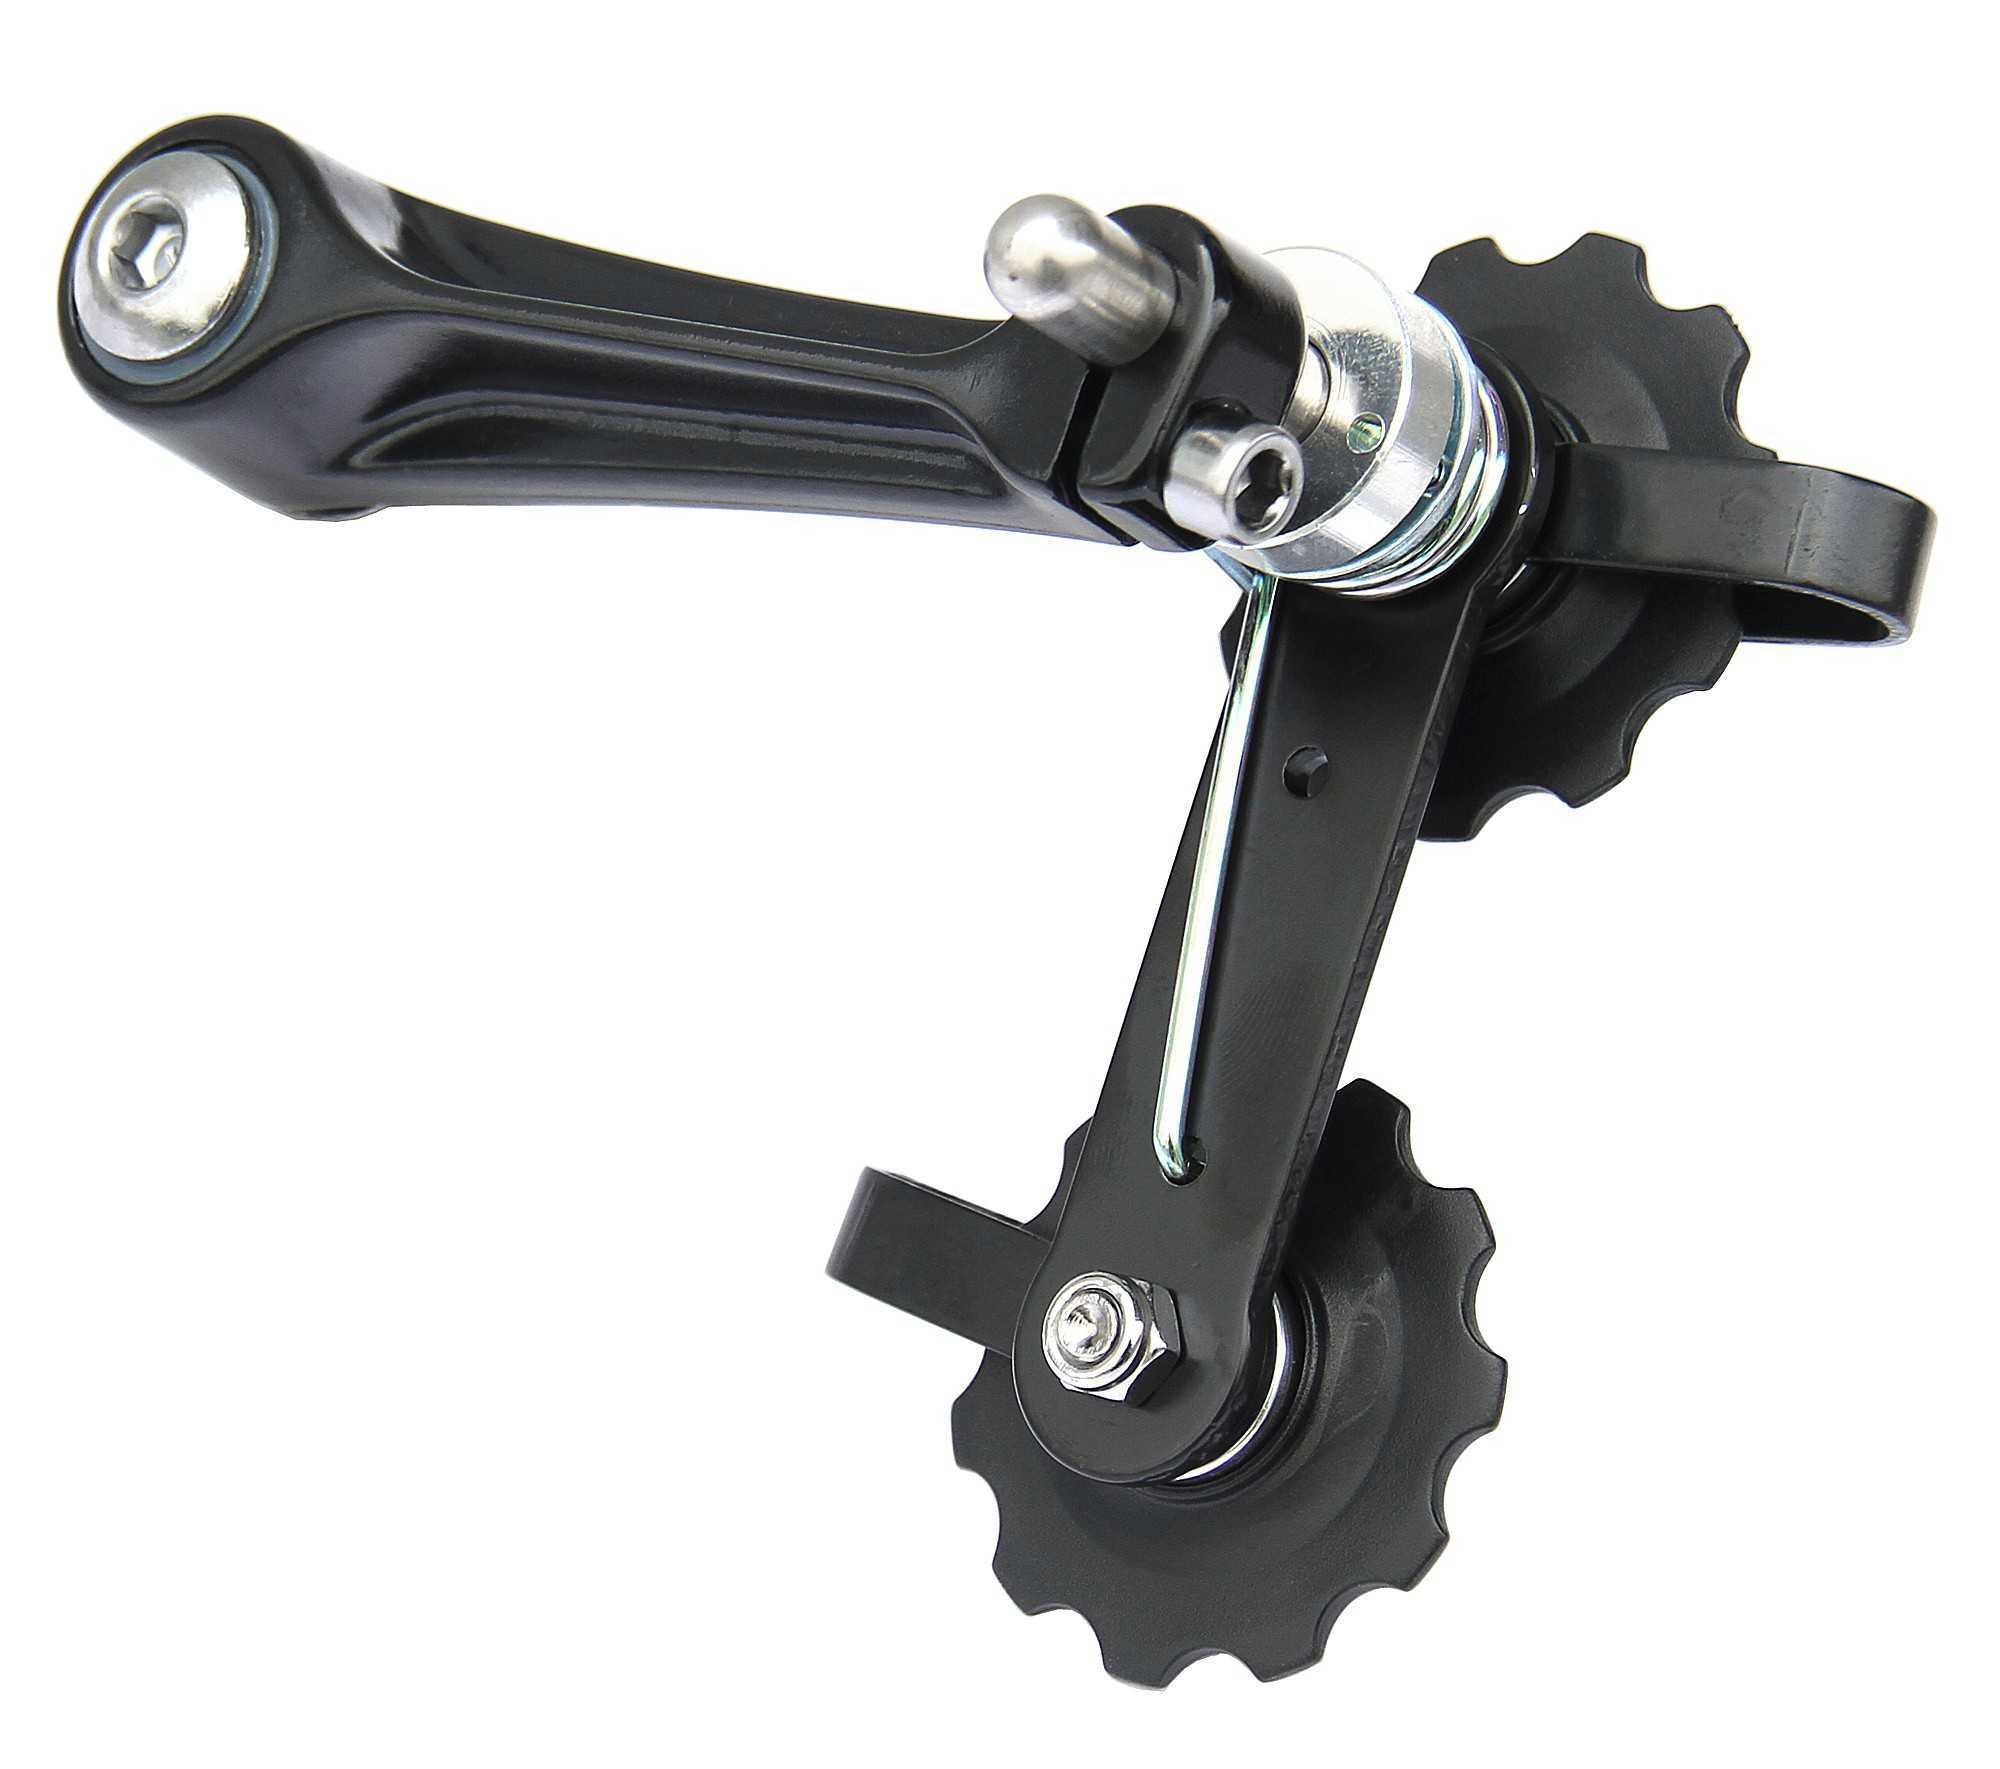 CyclingDeal MTB Road Bike Bicycle Aluminum Chain Tensioner Black